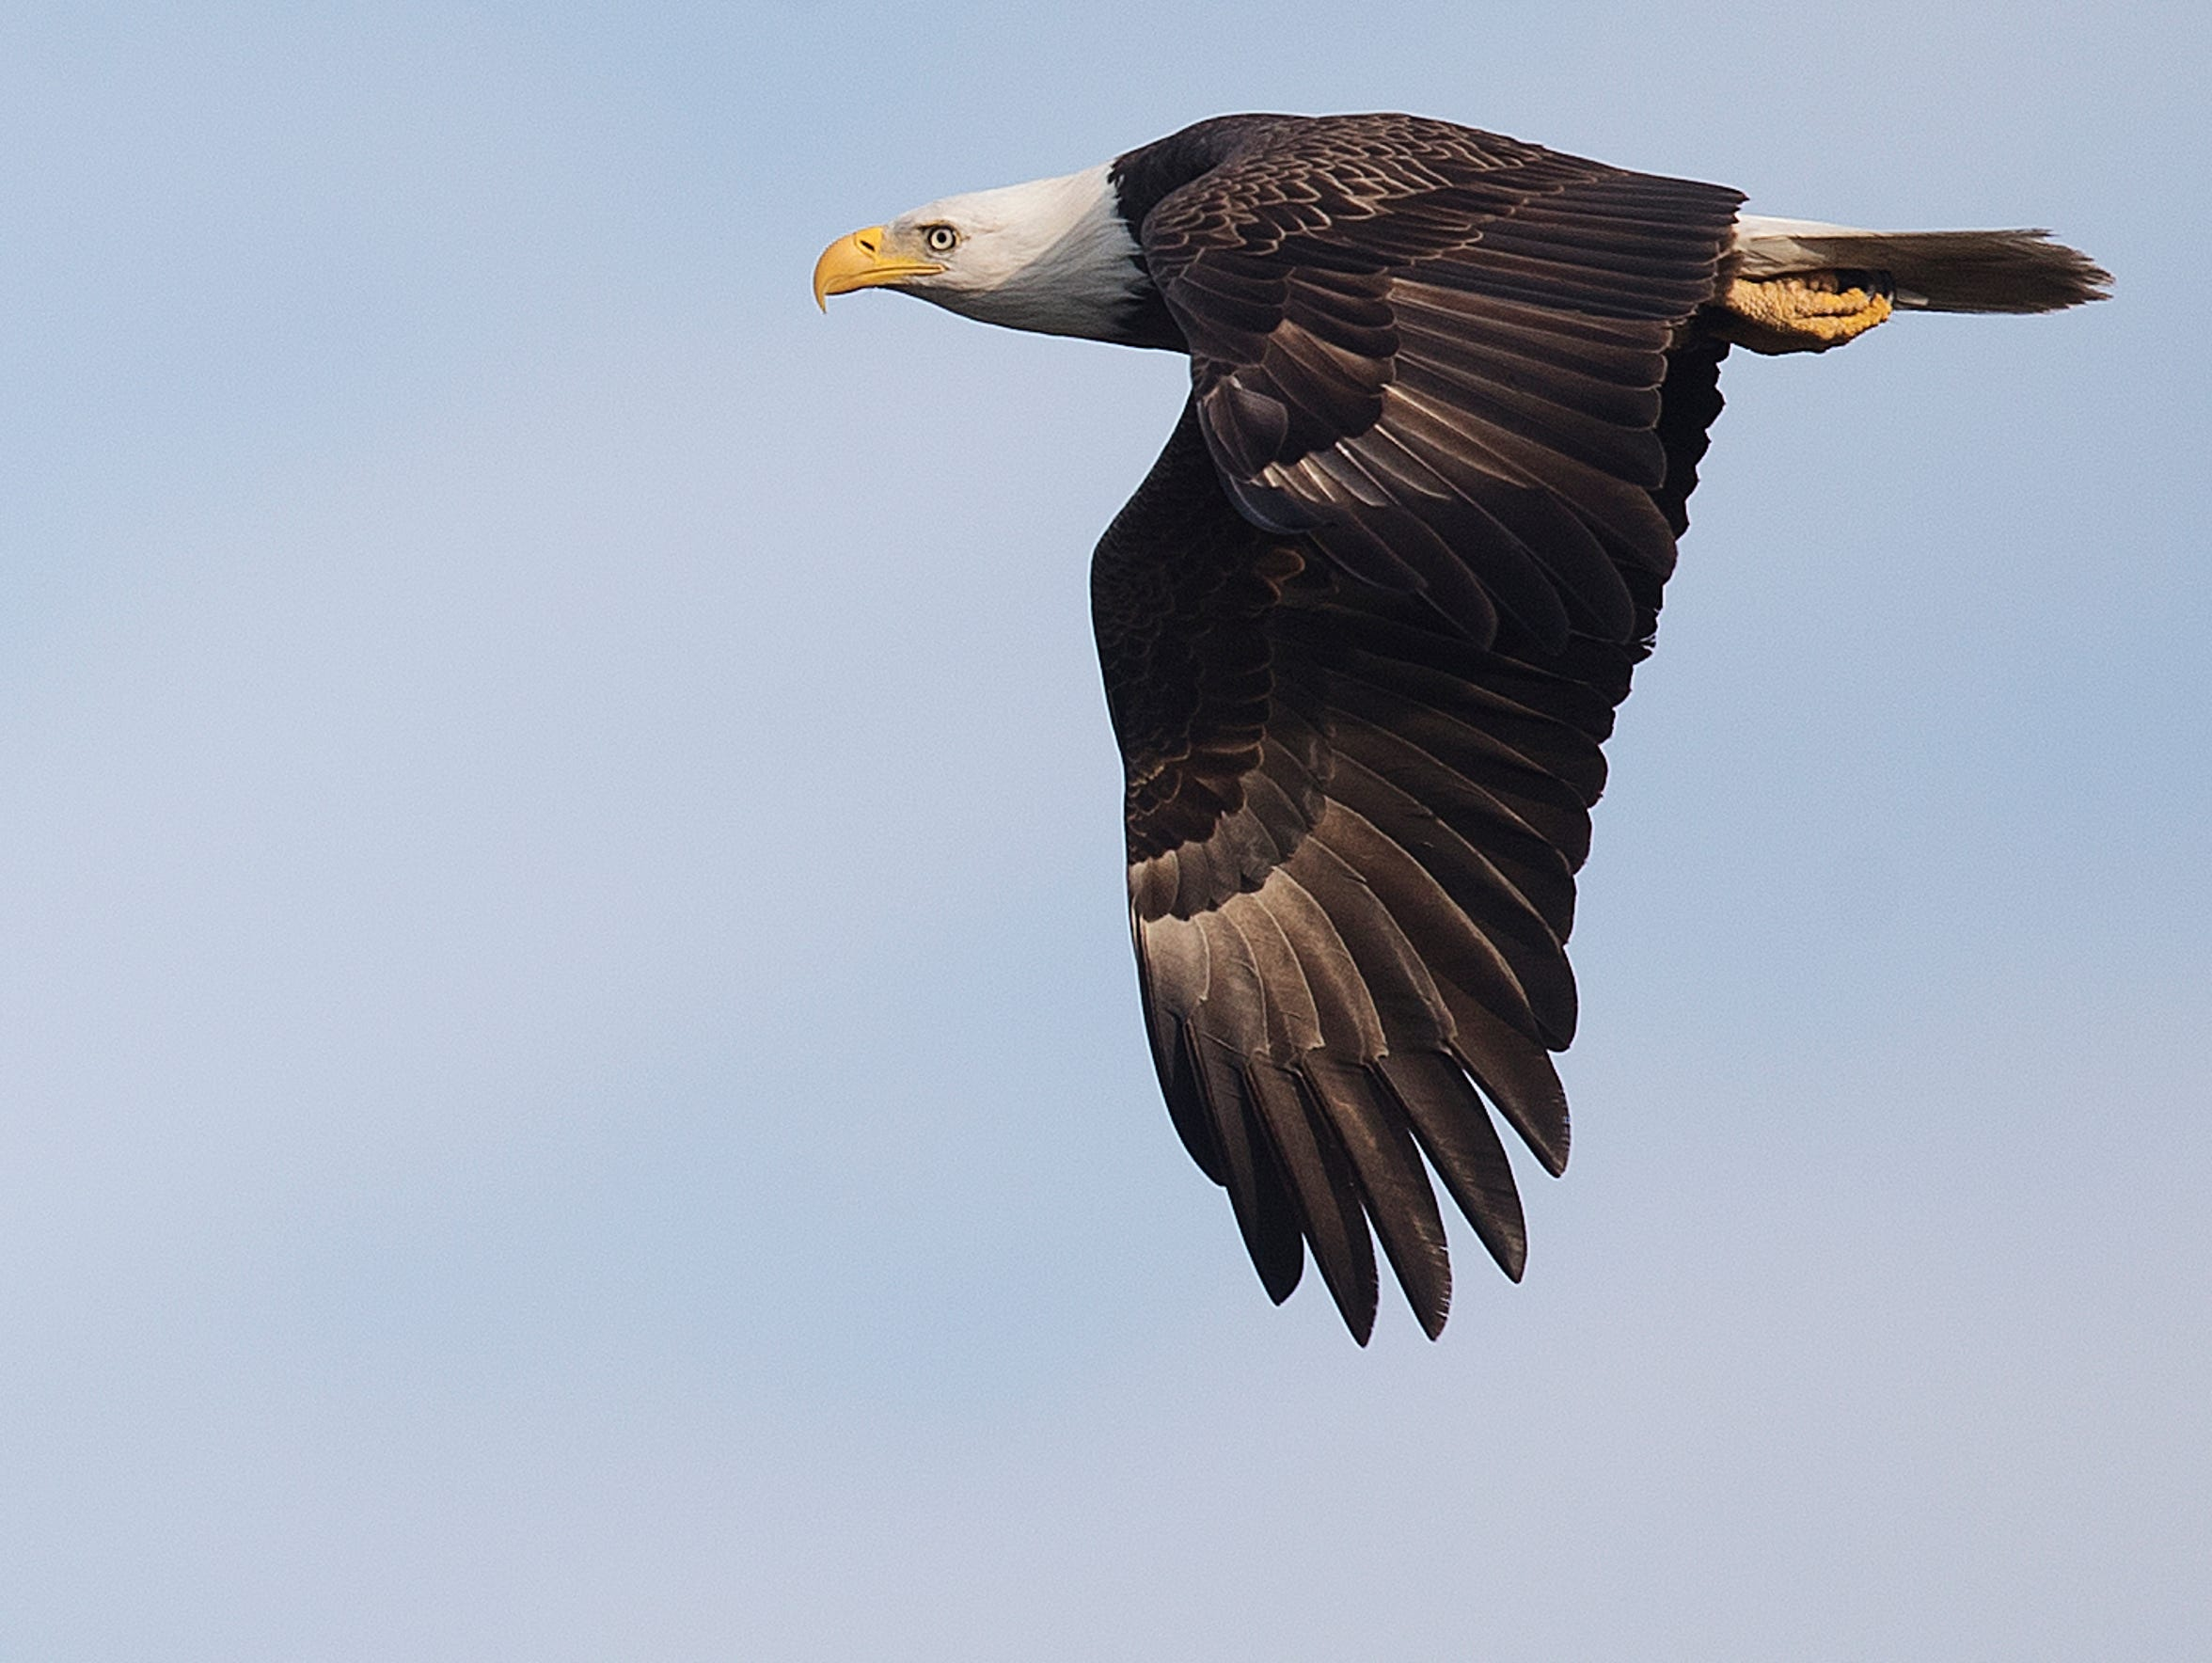 A bald eagle flies over Boggy Creek outfitters on Lake